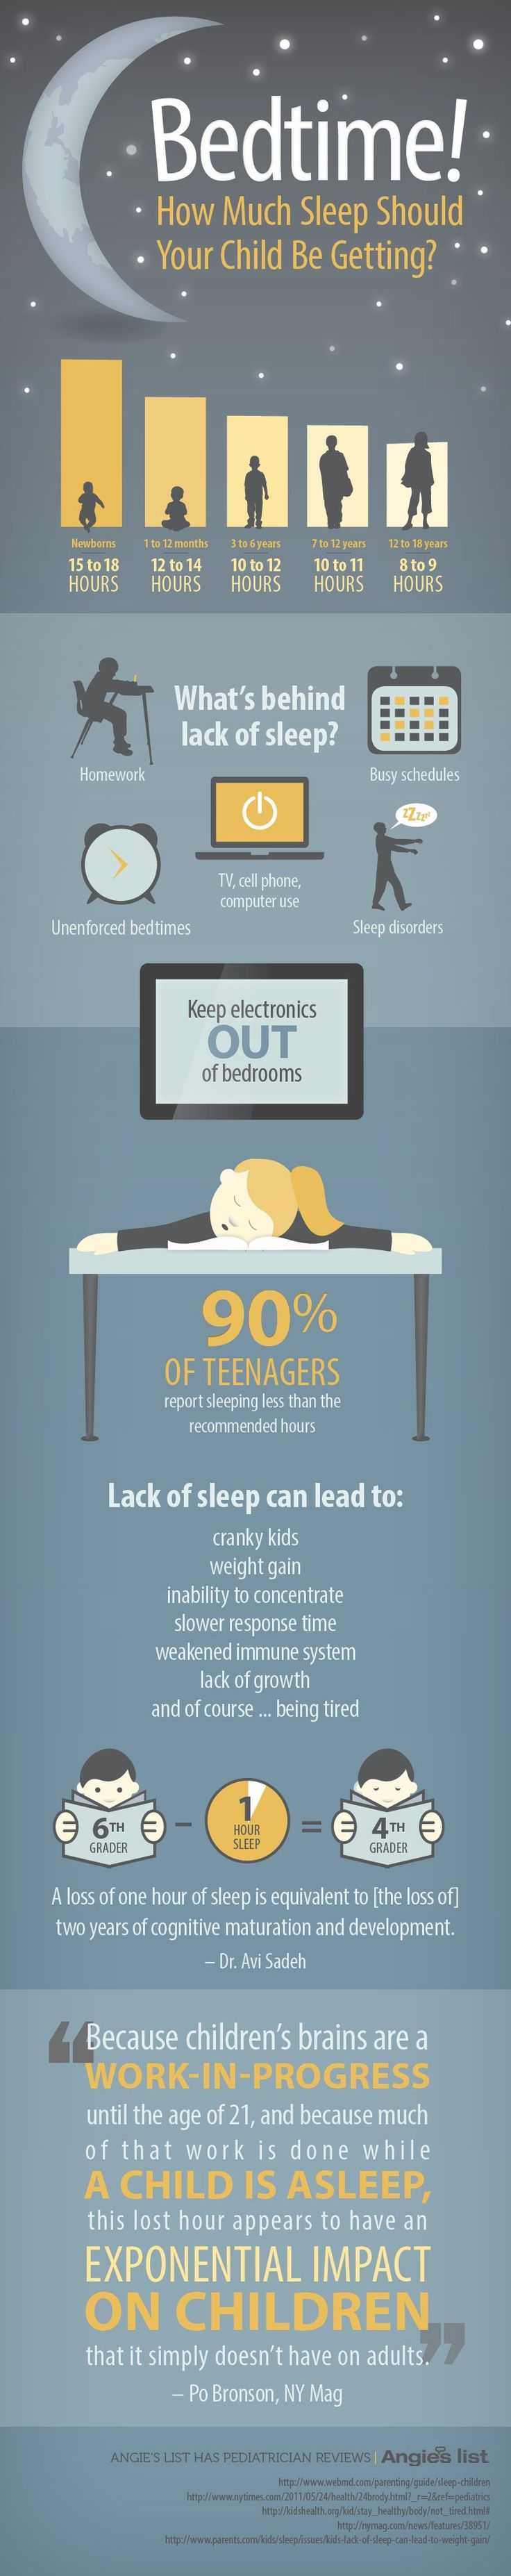 A 6th grader on too little sleep will have the cognitive abilities of a 4th…